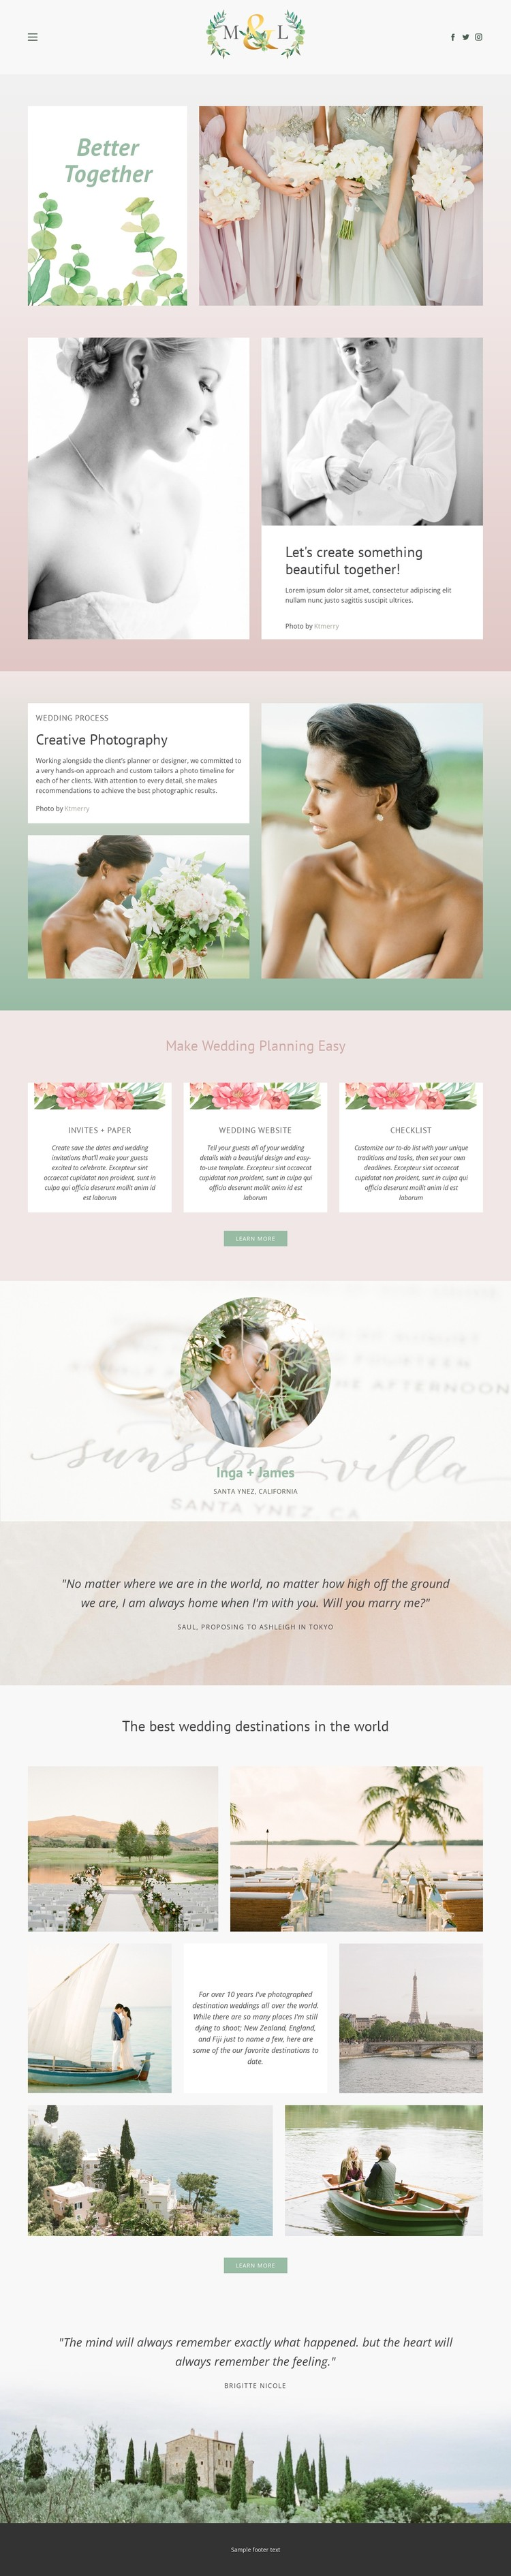 Best photos for wedding CSS Template